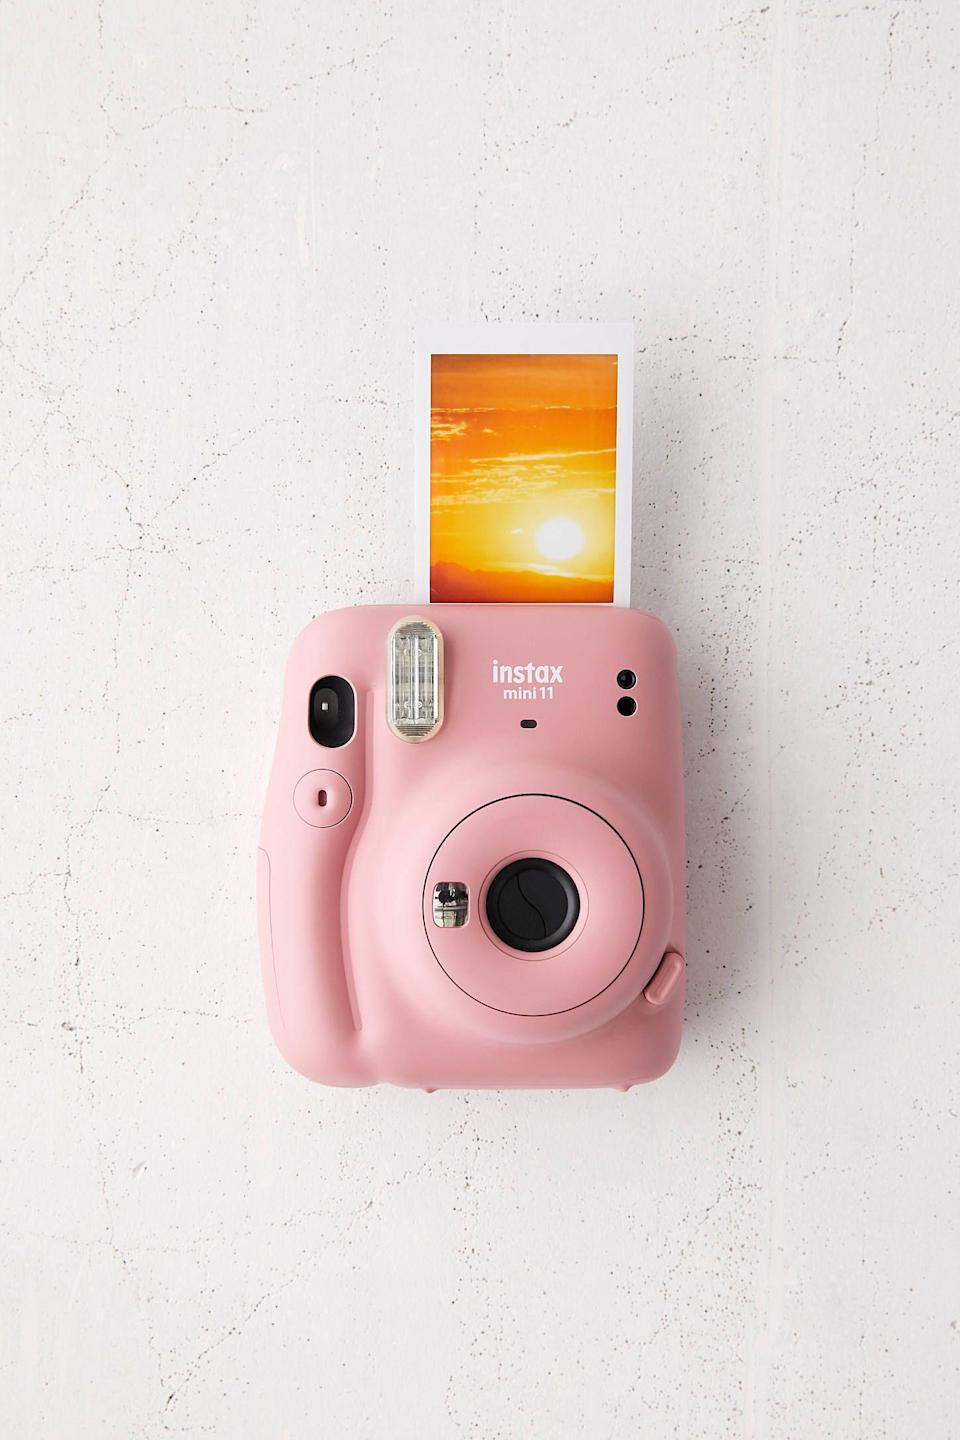 """<p><strong>Fujifilm</strong></p><p>urbanoutfitters.com</p><p><strong>$79.00</strong></p><p><a href=""""https://go.redirectingat.com?id=74968X1596630&url=https%3A%2F%2Fwww.urbanoutfitters.com%2Fshop%2Ffujifilm-uo-exclusive-instax-mini-11-instant-camera&sref=https%3A%2F%2Fwww.countryliving.com%2Fshopping%2Fgifts%2Fg2077%2Fchristmas-presents%2F"""" rel=""""nofollow noopener"""" target=""""_blank"""" data-ylk=""""slk:Shop Now"""" class=""""link rapid-noclick-resp"""">Shop Now</a></p><p>Capture memories -- big or small -- with this little camera. </p>"""